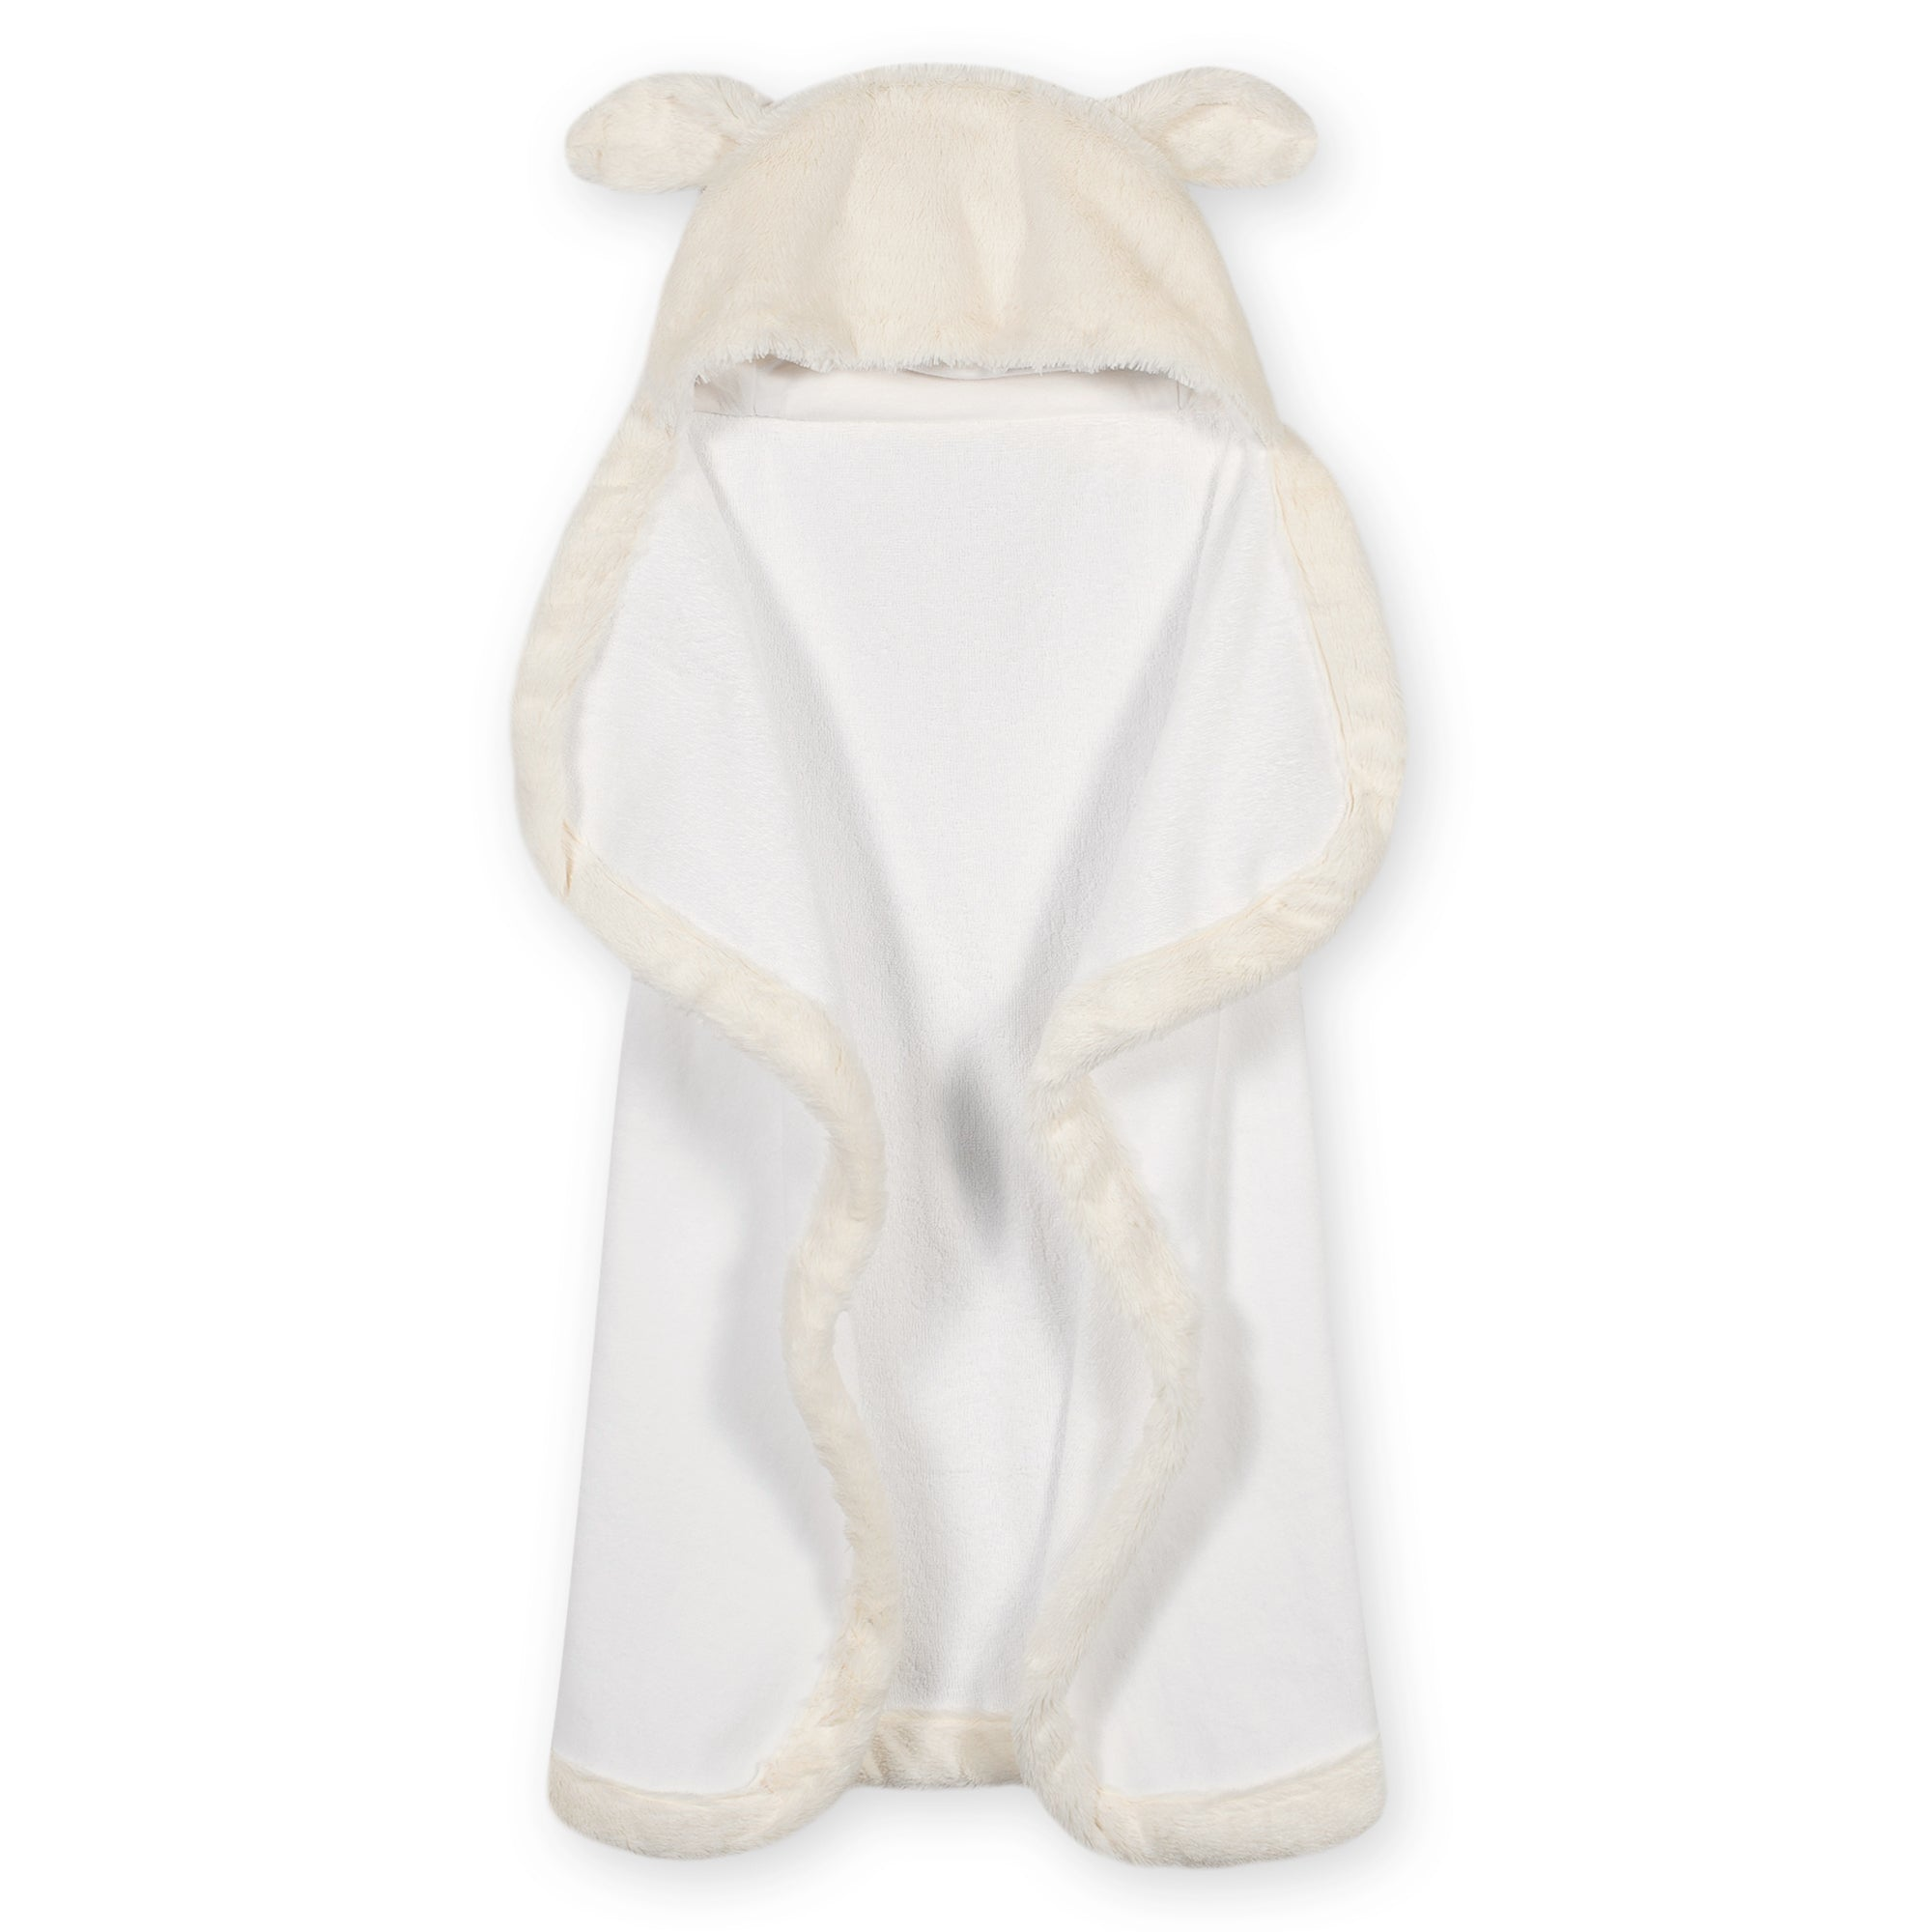 Baby Neutral Lamb Cuddle Plush Hooded Towel-Gerber Childrenswear Wholesale